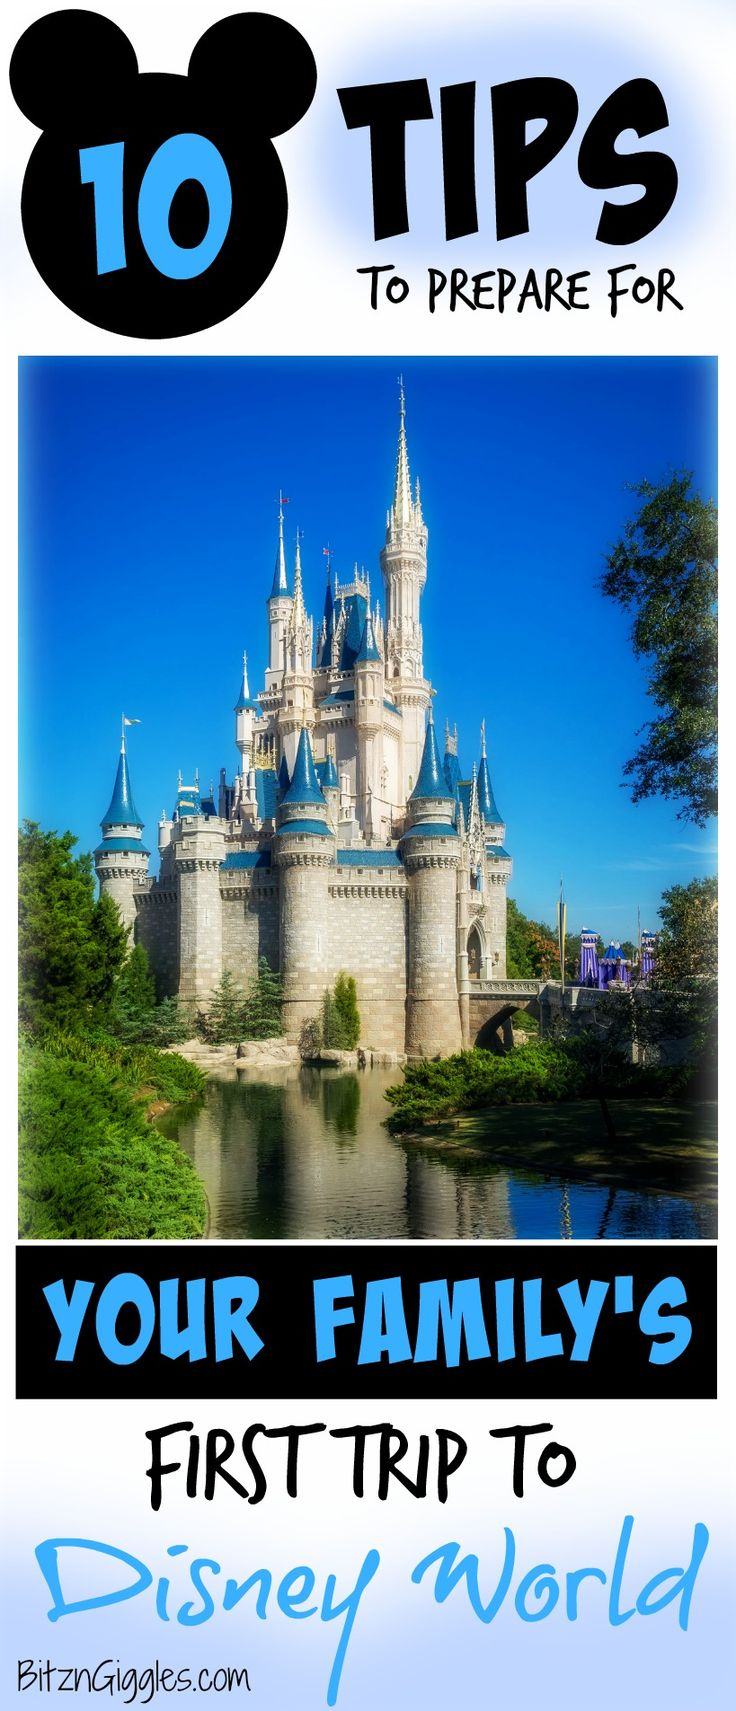 10 Tips to Prepare for Your Family's First Trip to Disney World - You've booked your trip. . .now what? Here are 10 ways to build some magic into your planning for a trip your family will never forget!